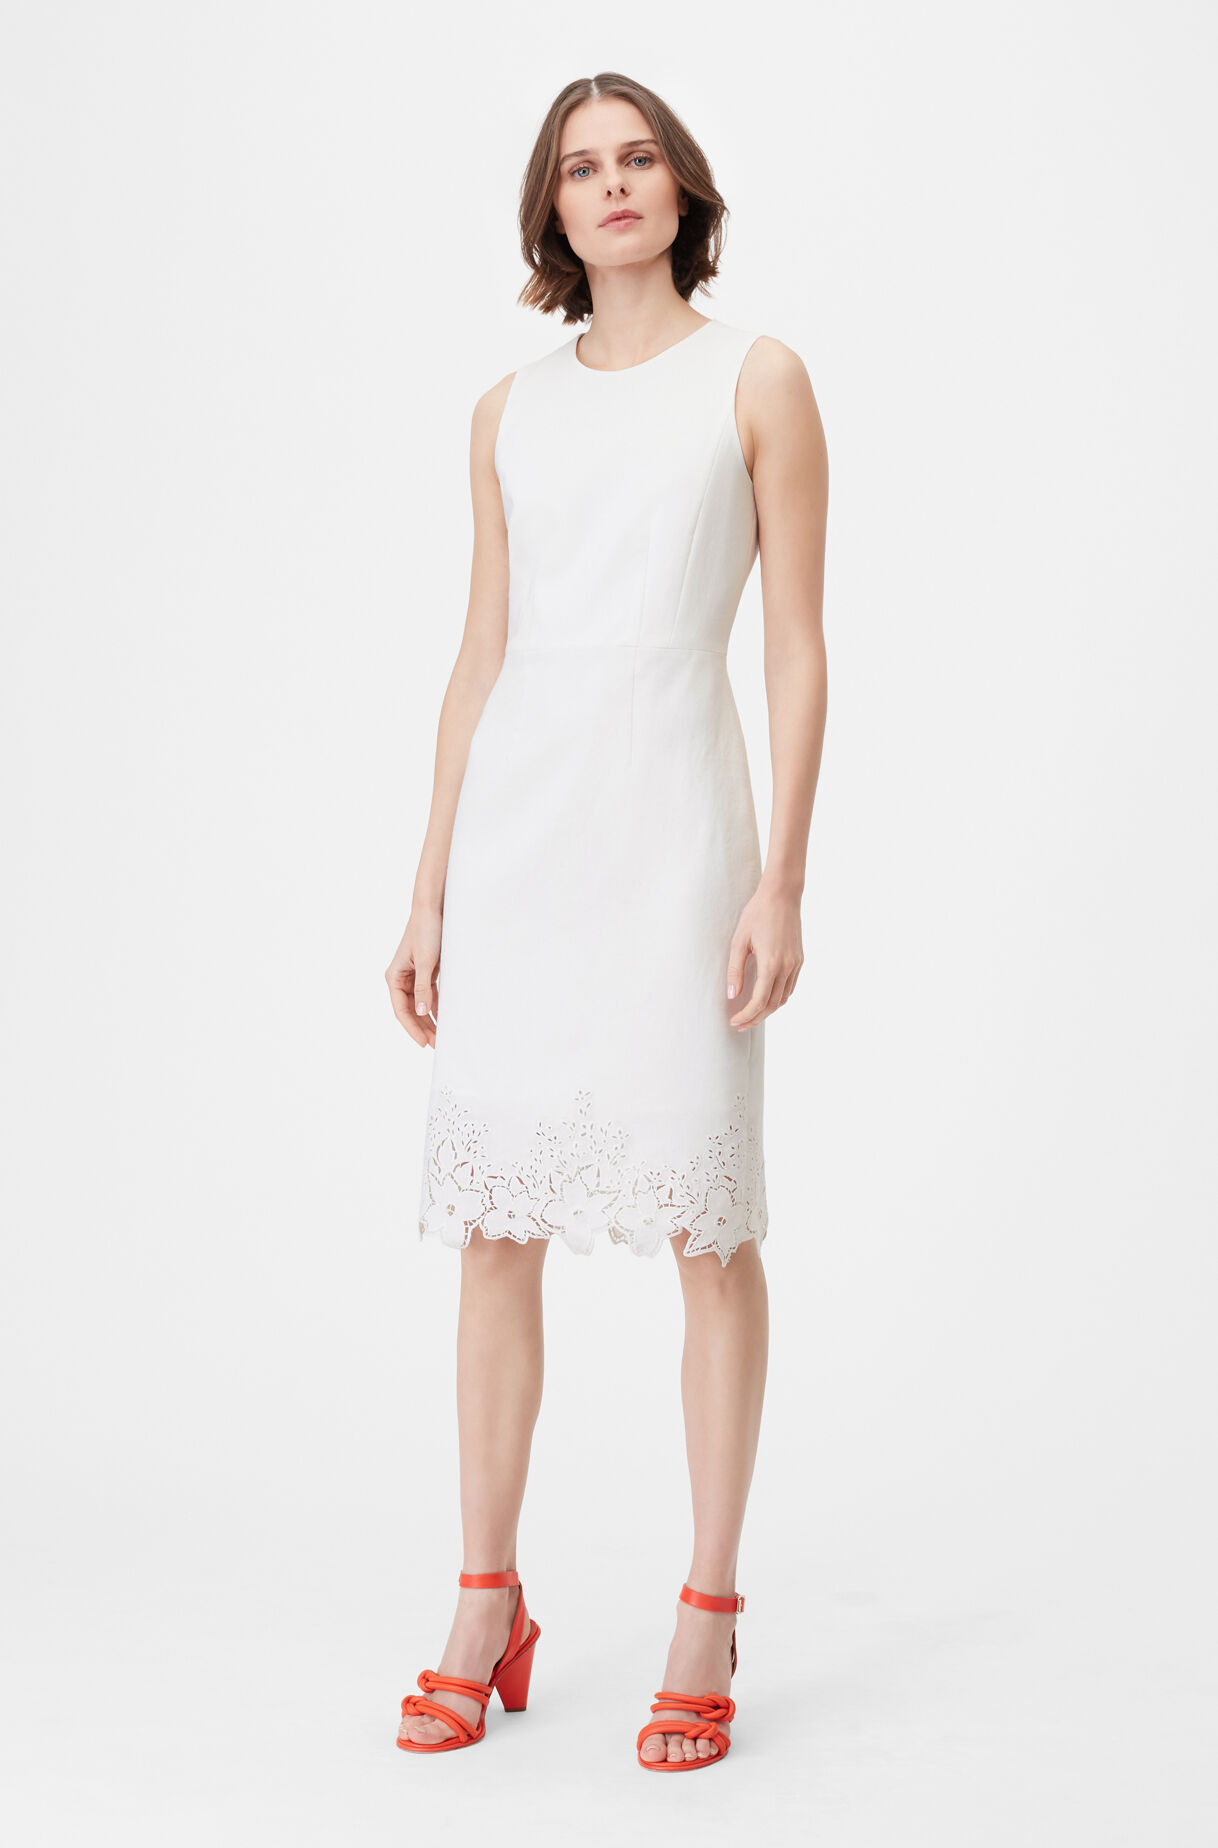 Tailored Eyelet Embroidered Dress, , large